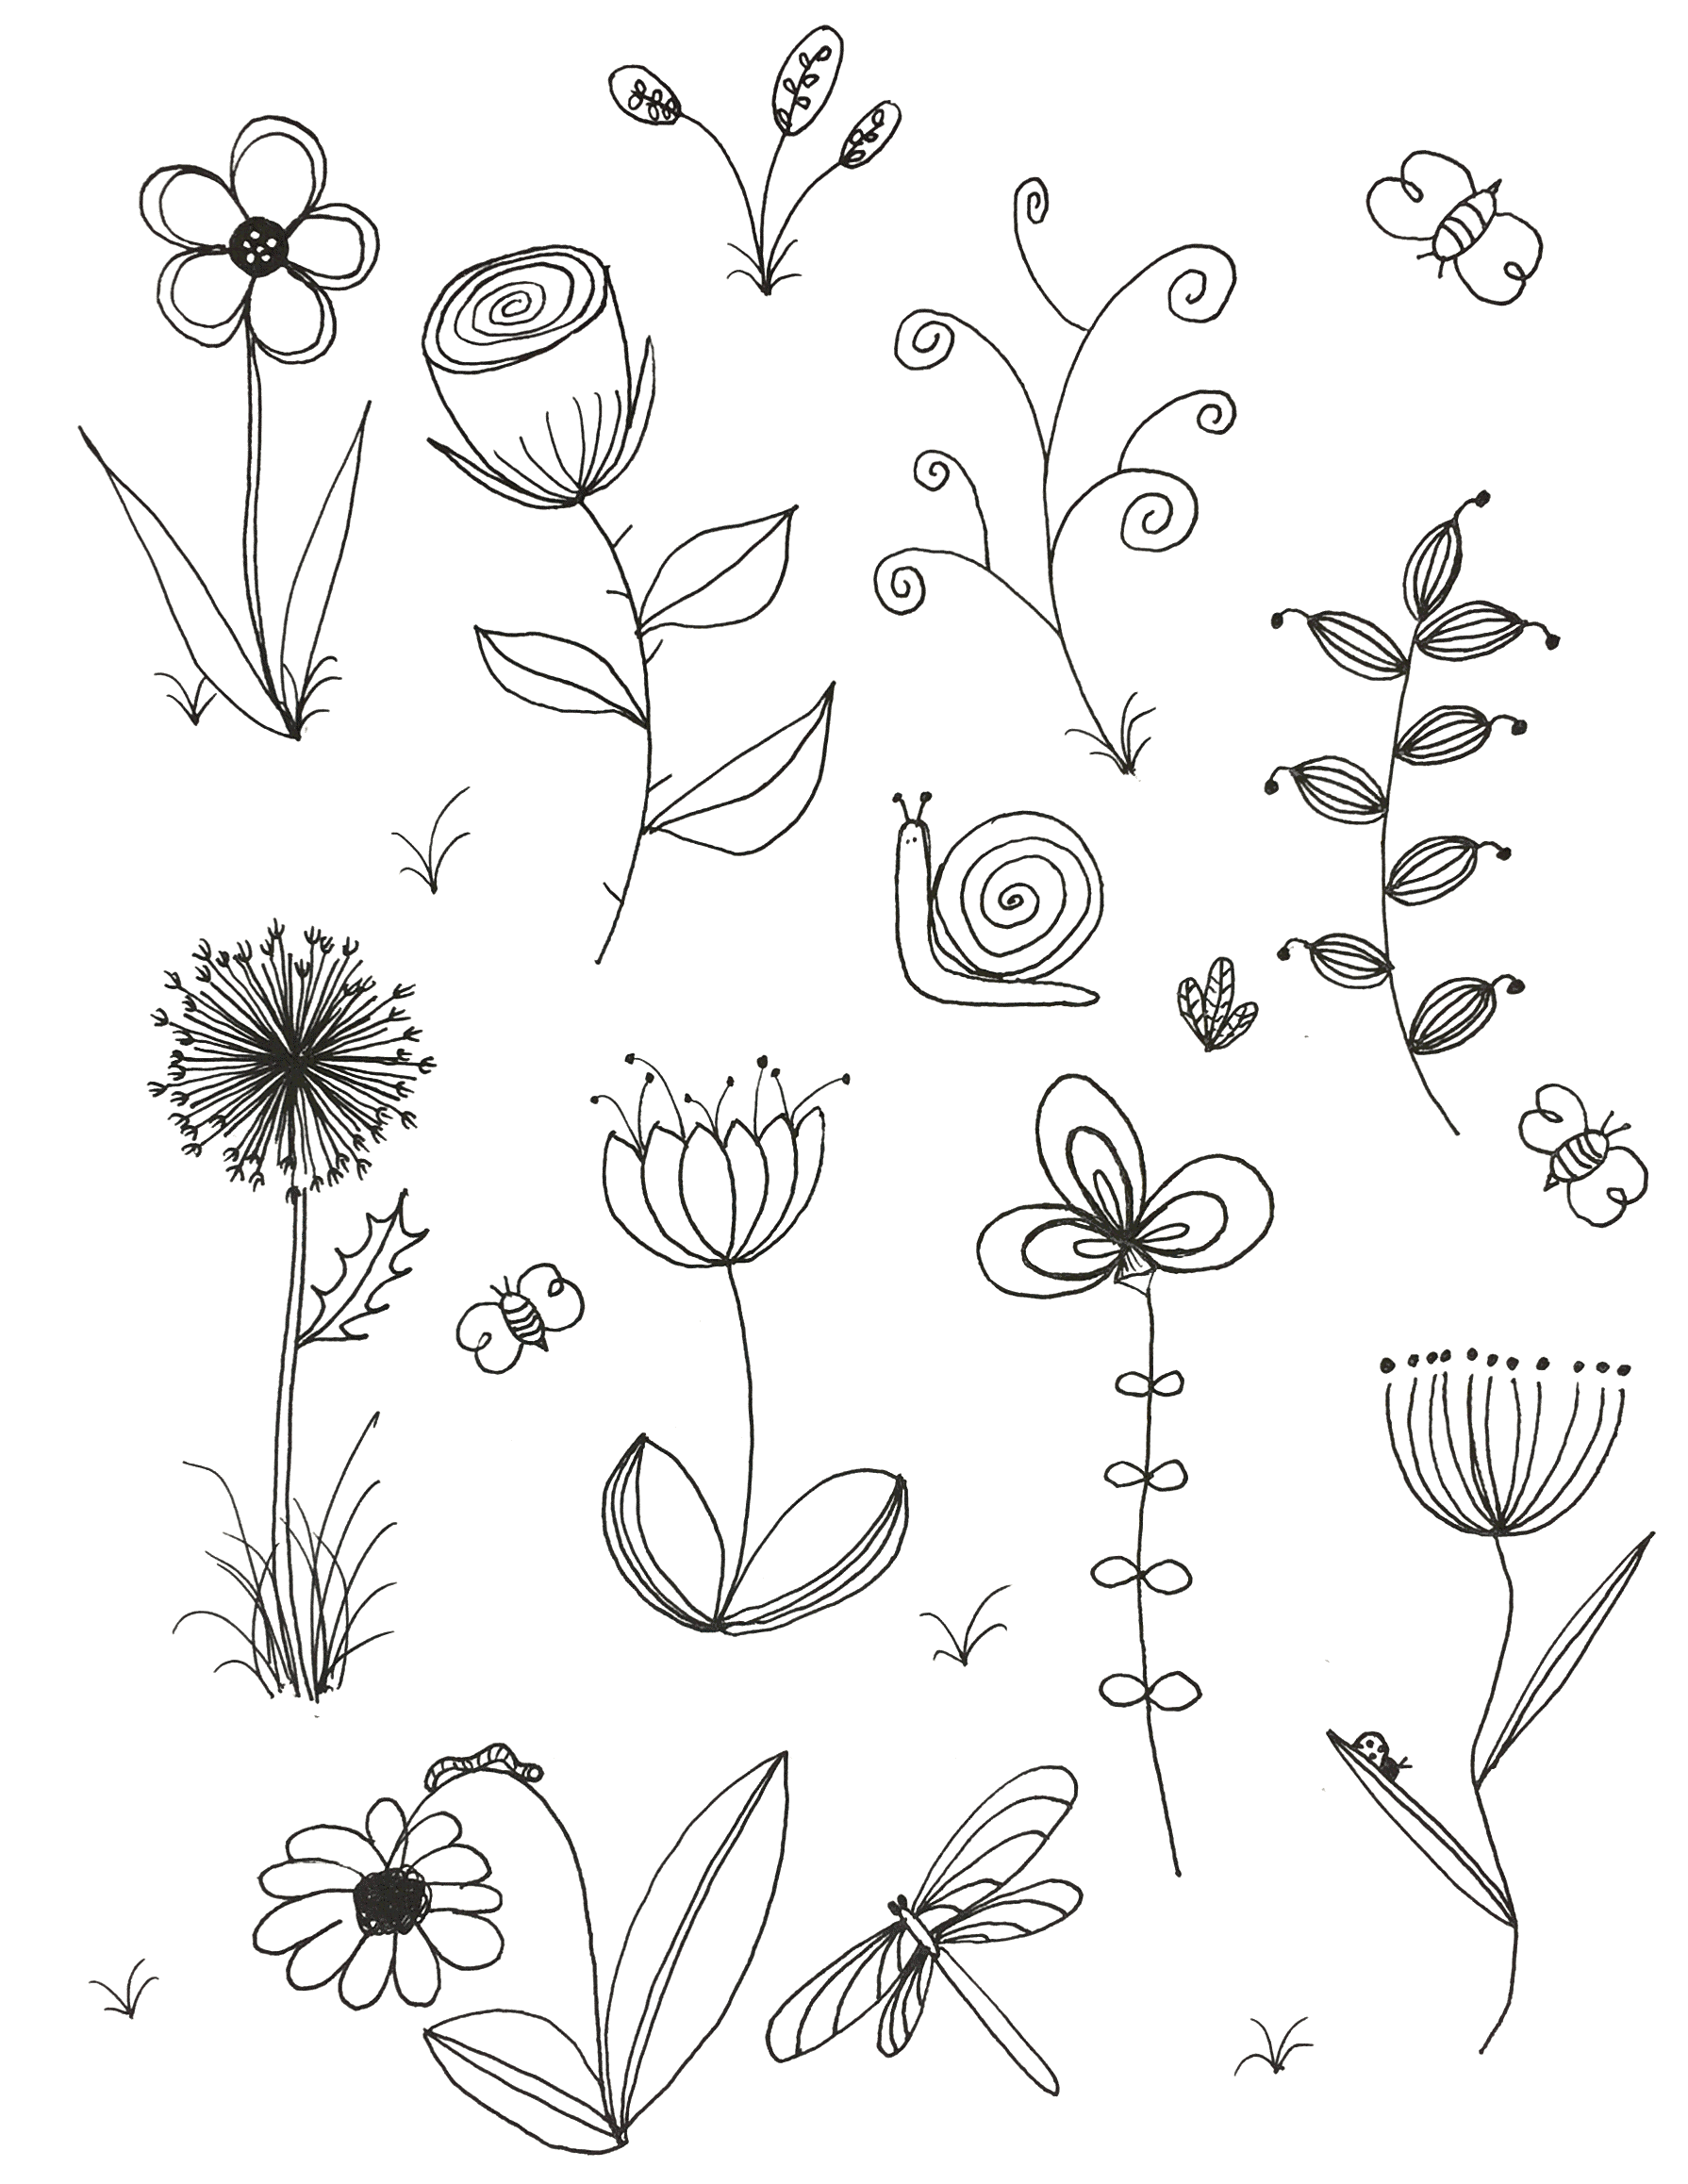 Line Art Aplic Flower Design : My original art inspired by many doodle flower line